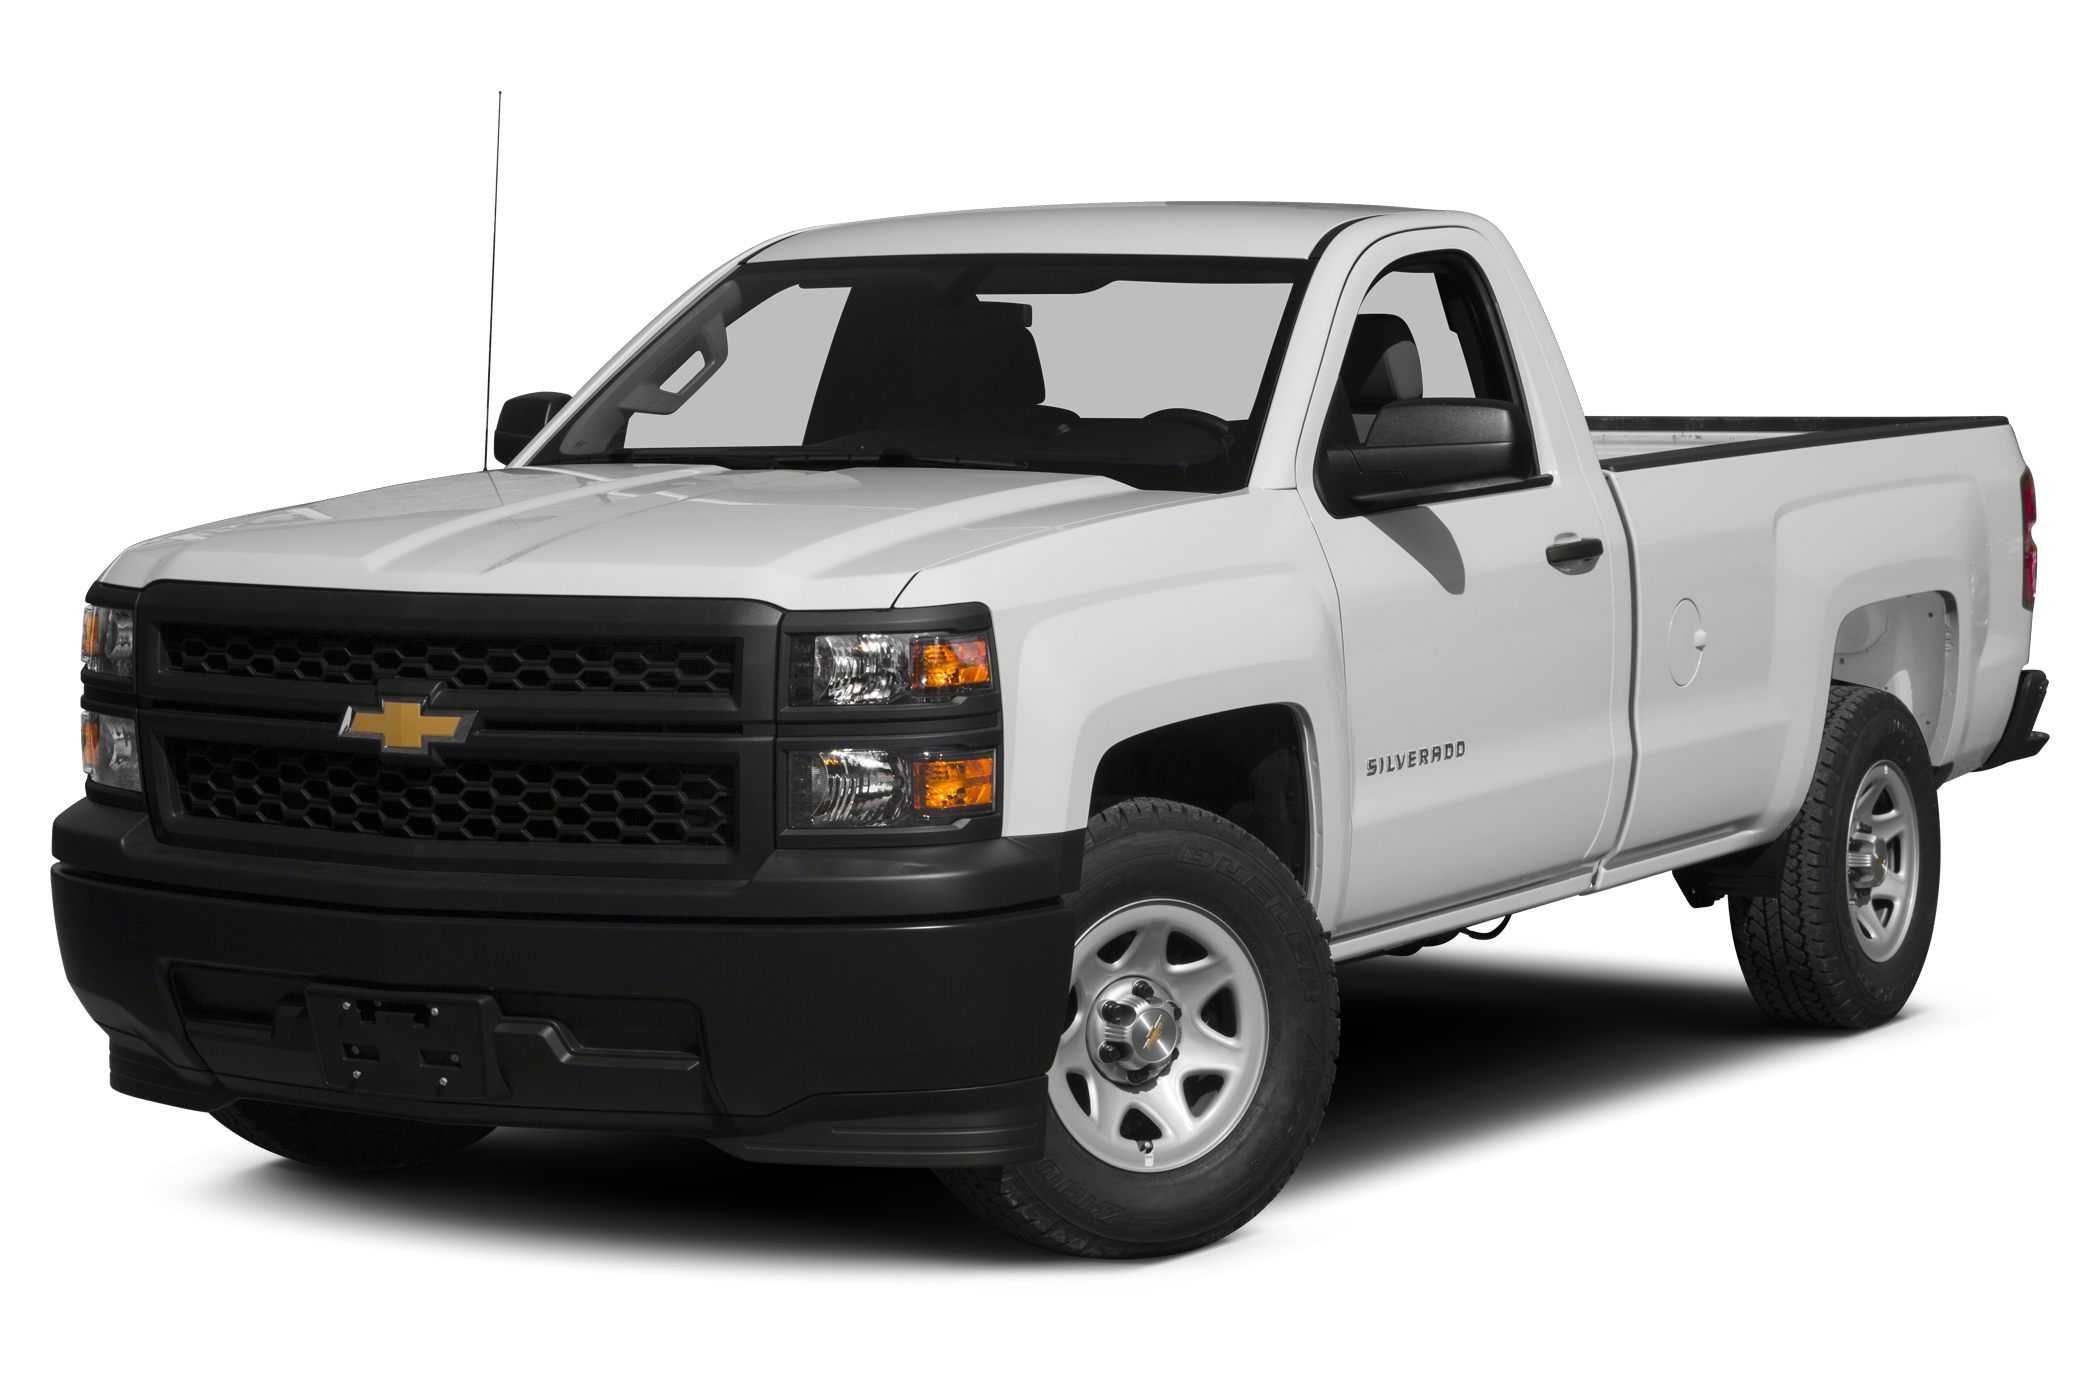 2015 Chevrolet Silverado 1500 1LT Crew Cab Pickup for sale in Daphne for $34,282 with 12 miles